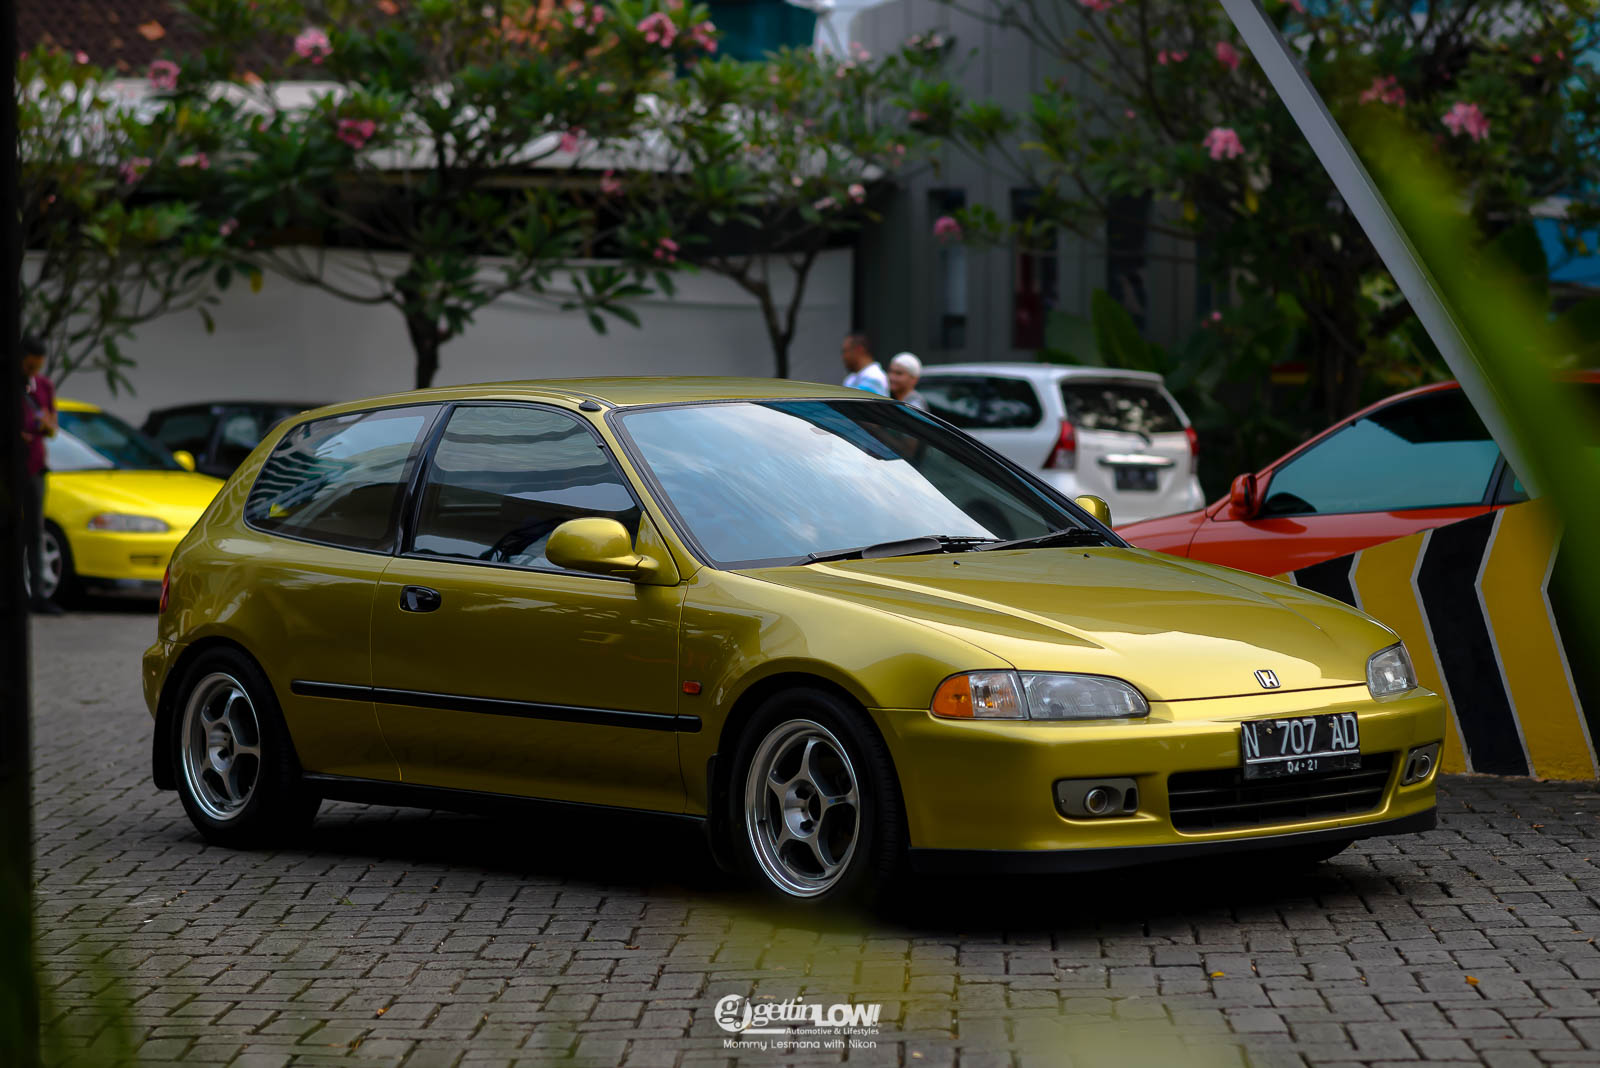 indonesian honda estilo meet in ramadhan